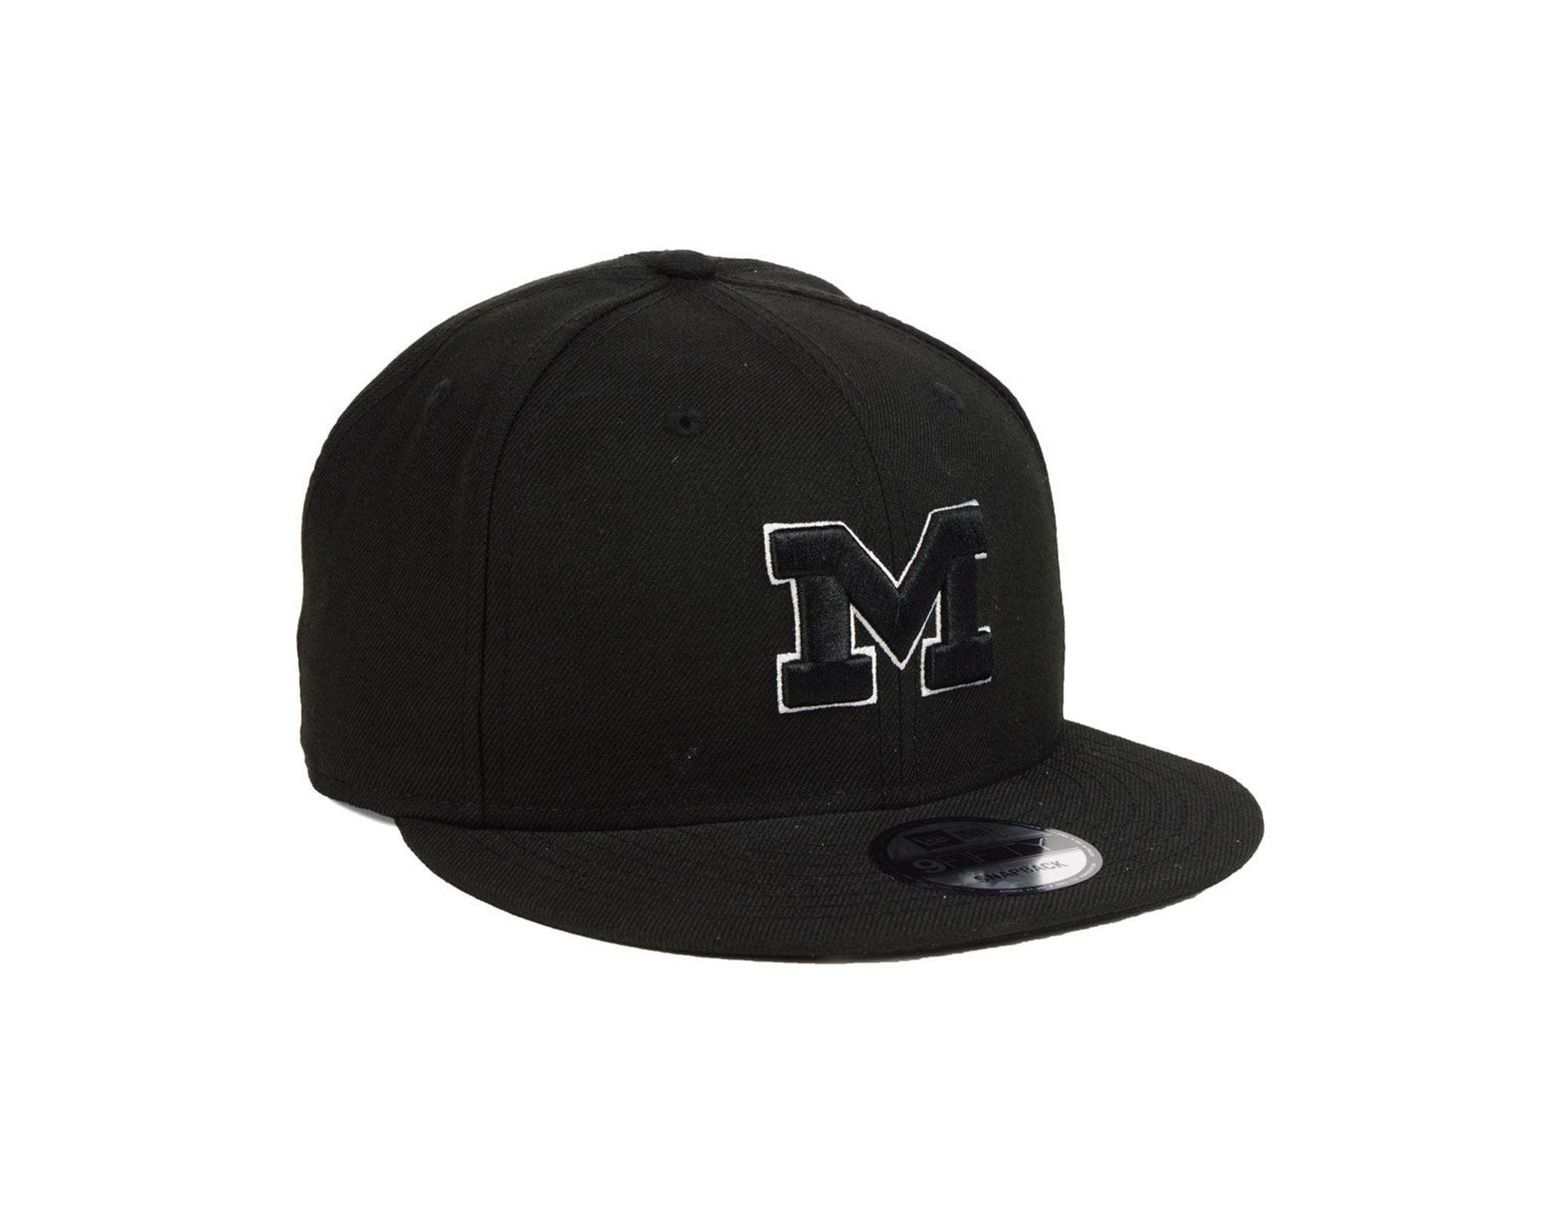 buy popular 9a2b3 5c0fe KTZ Michigan Wolverines Black White Fashion 9fifty Snapback Cap in Black  for Men - Lyst